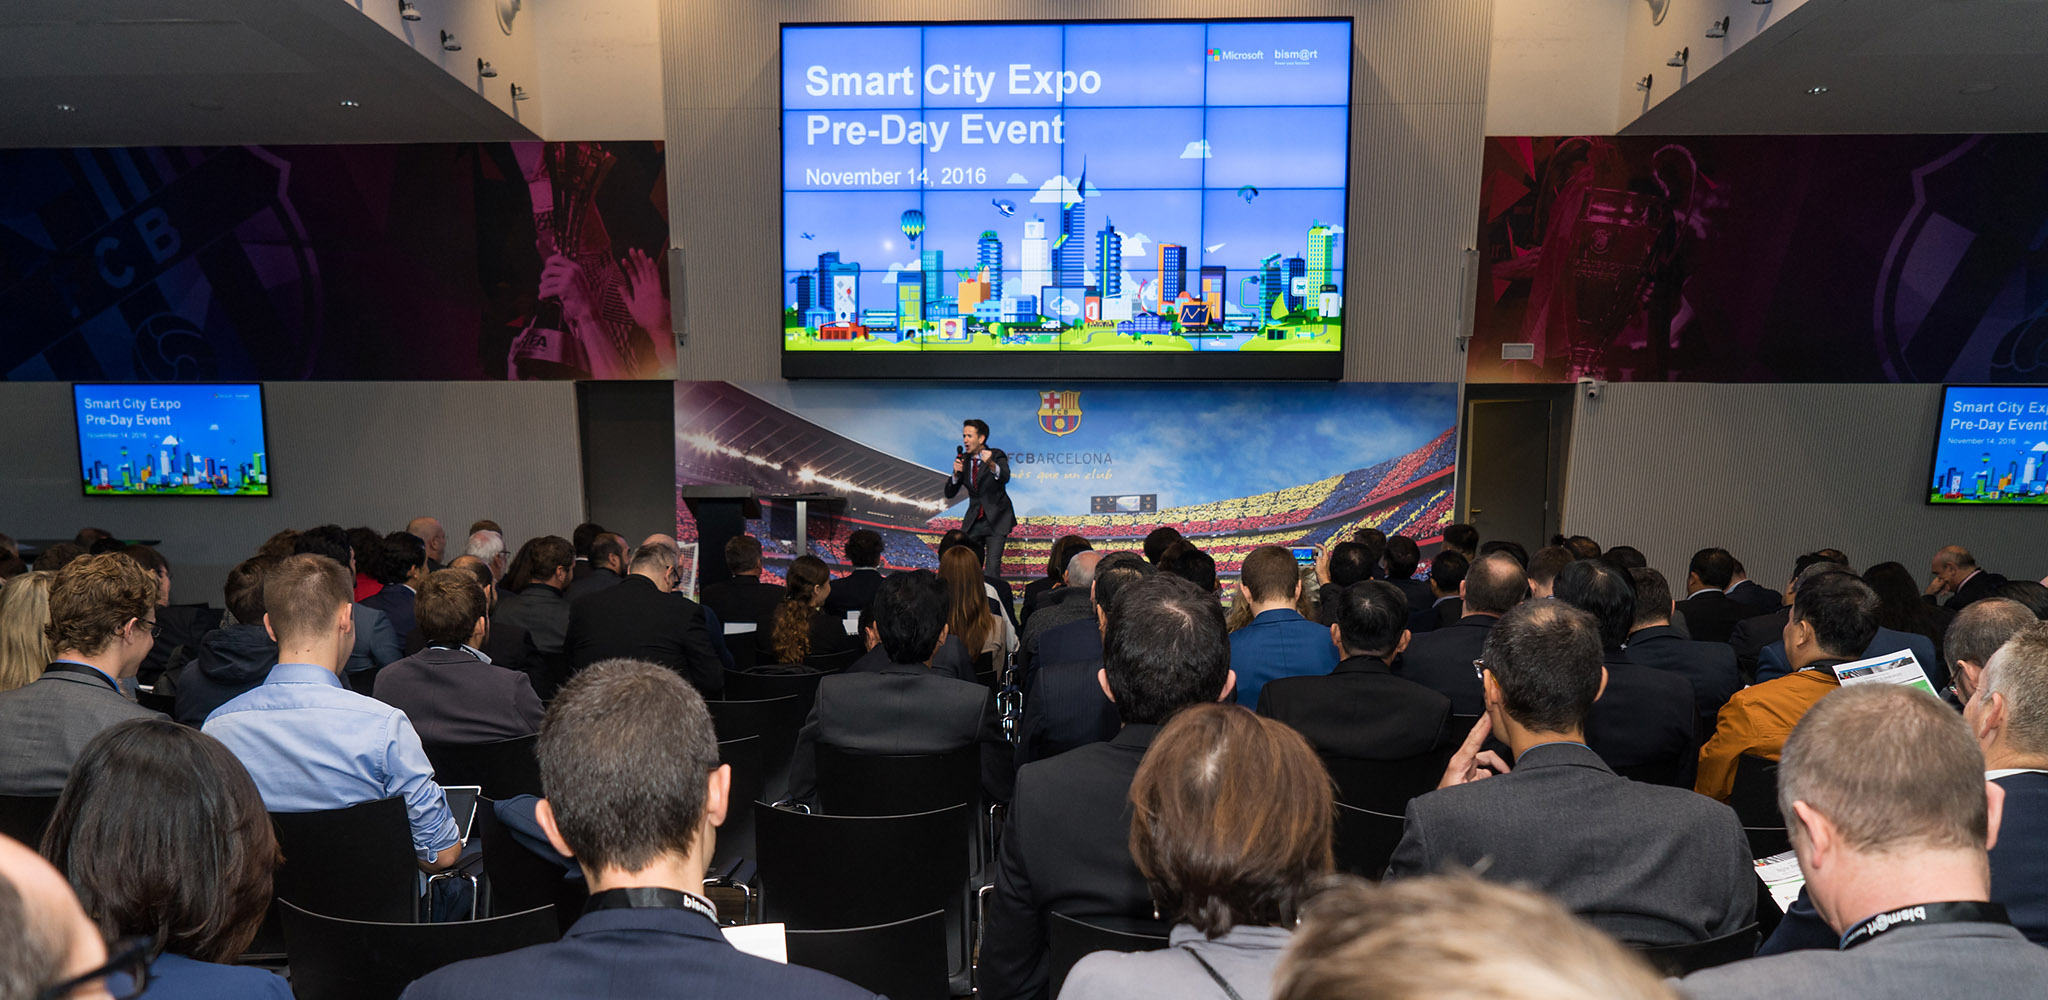 Smart City Expo Pre-Day Event